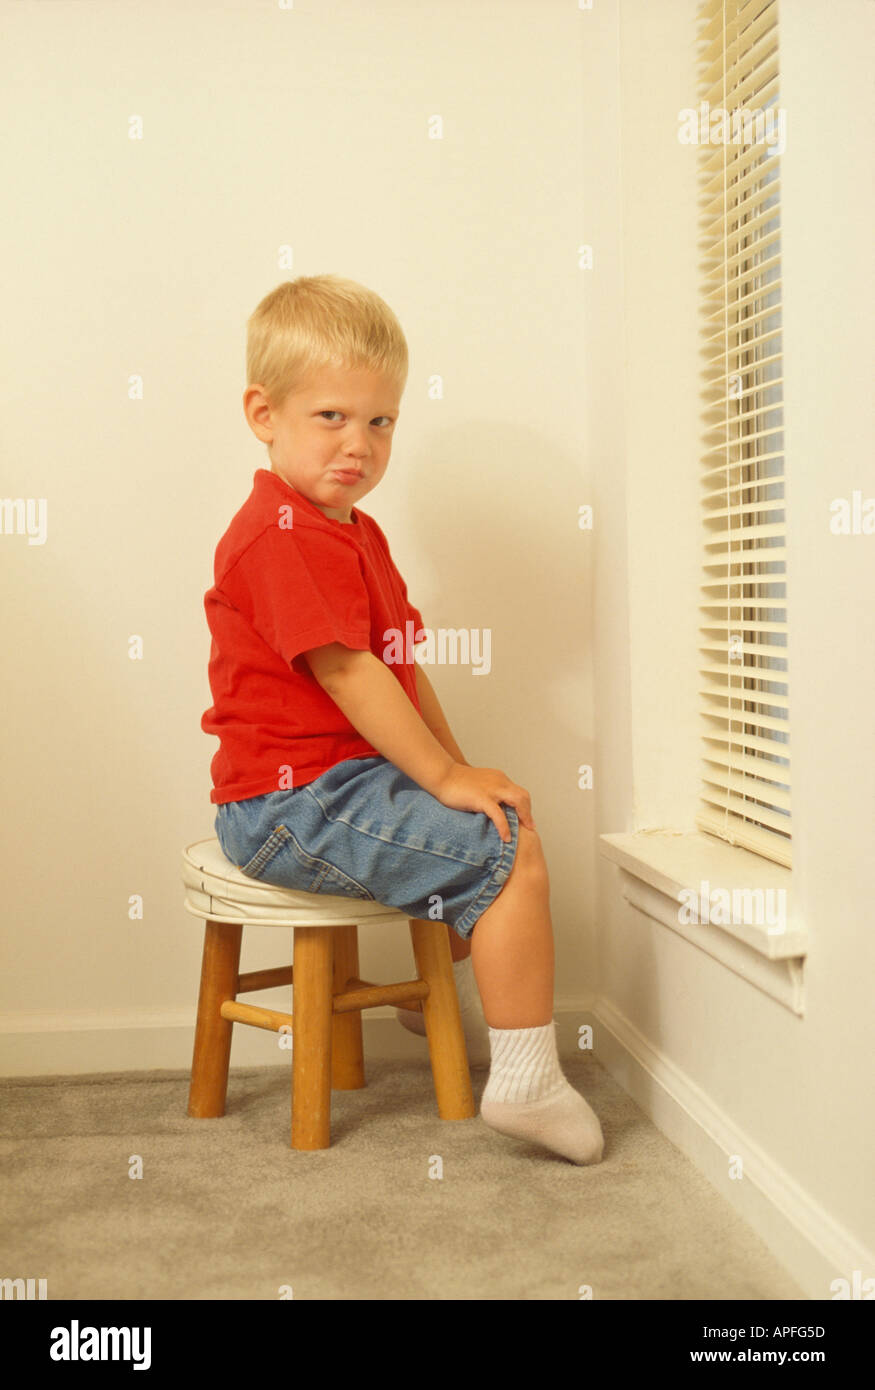 Three Year Old Sitting On Stool For Time Out Stock Photo